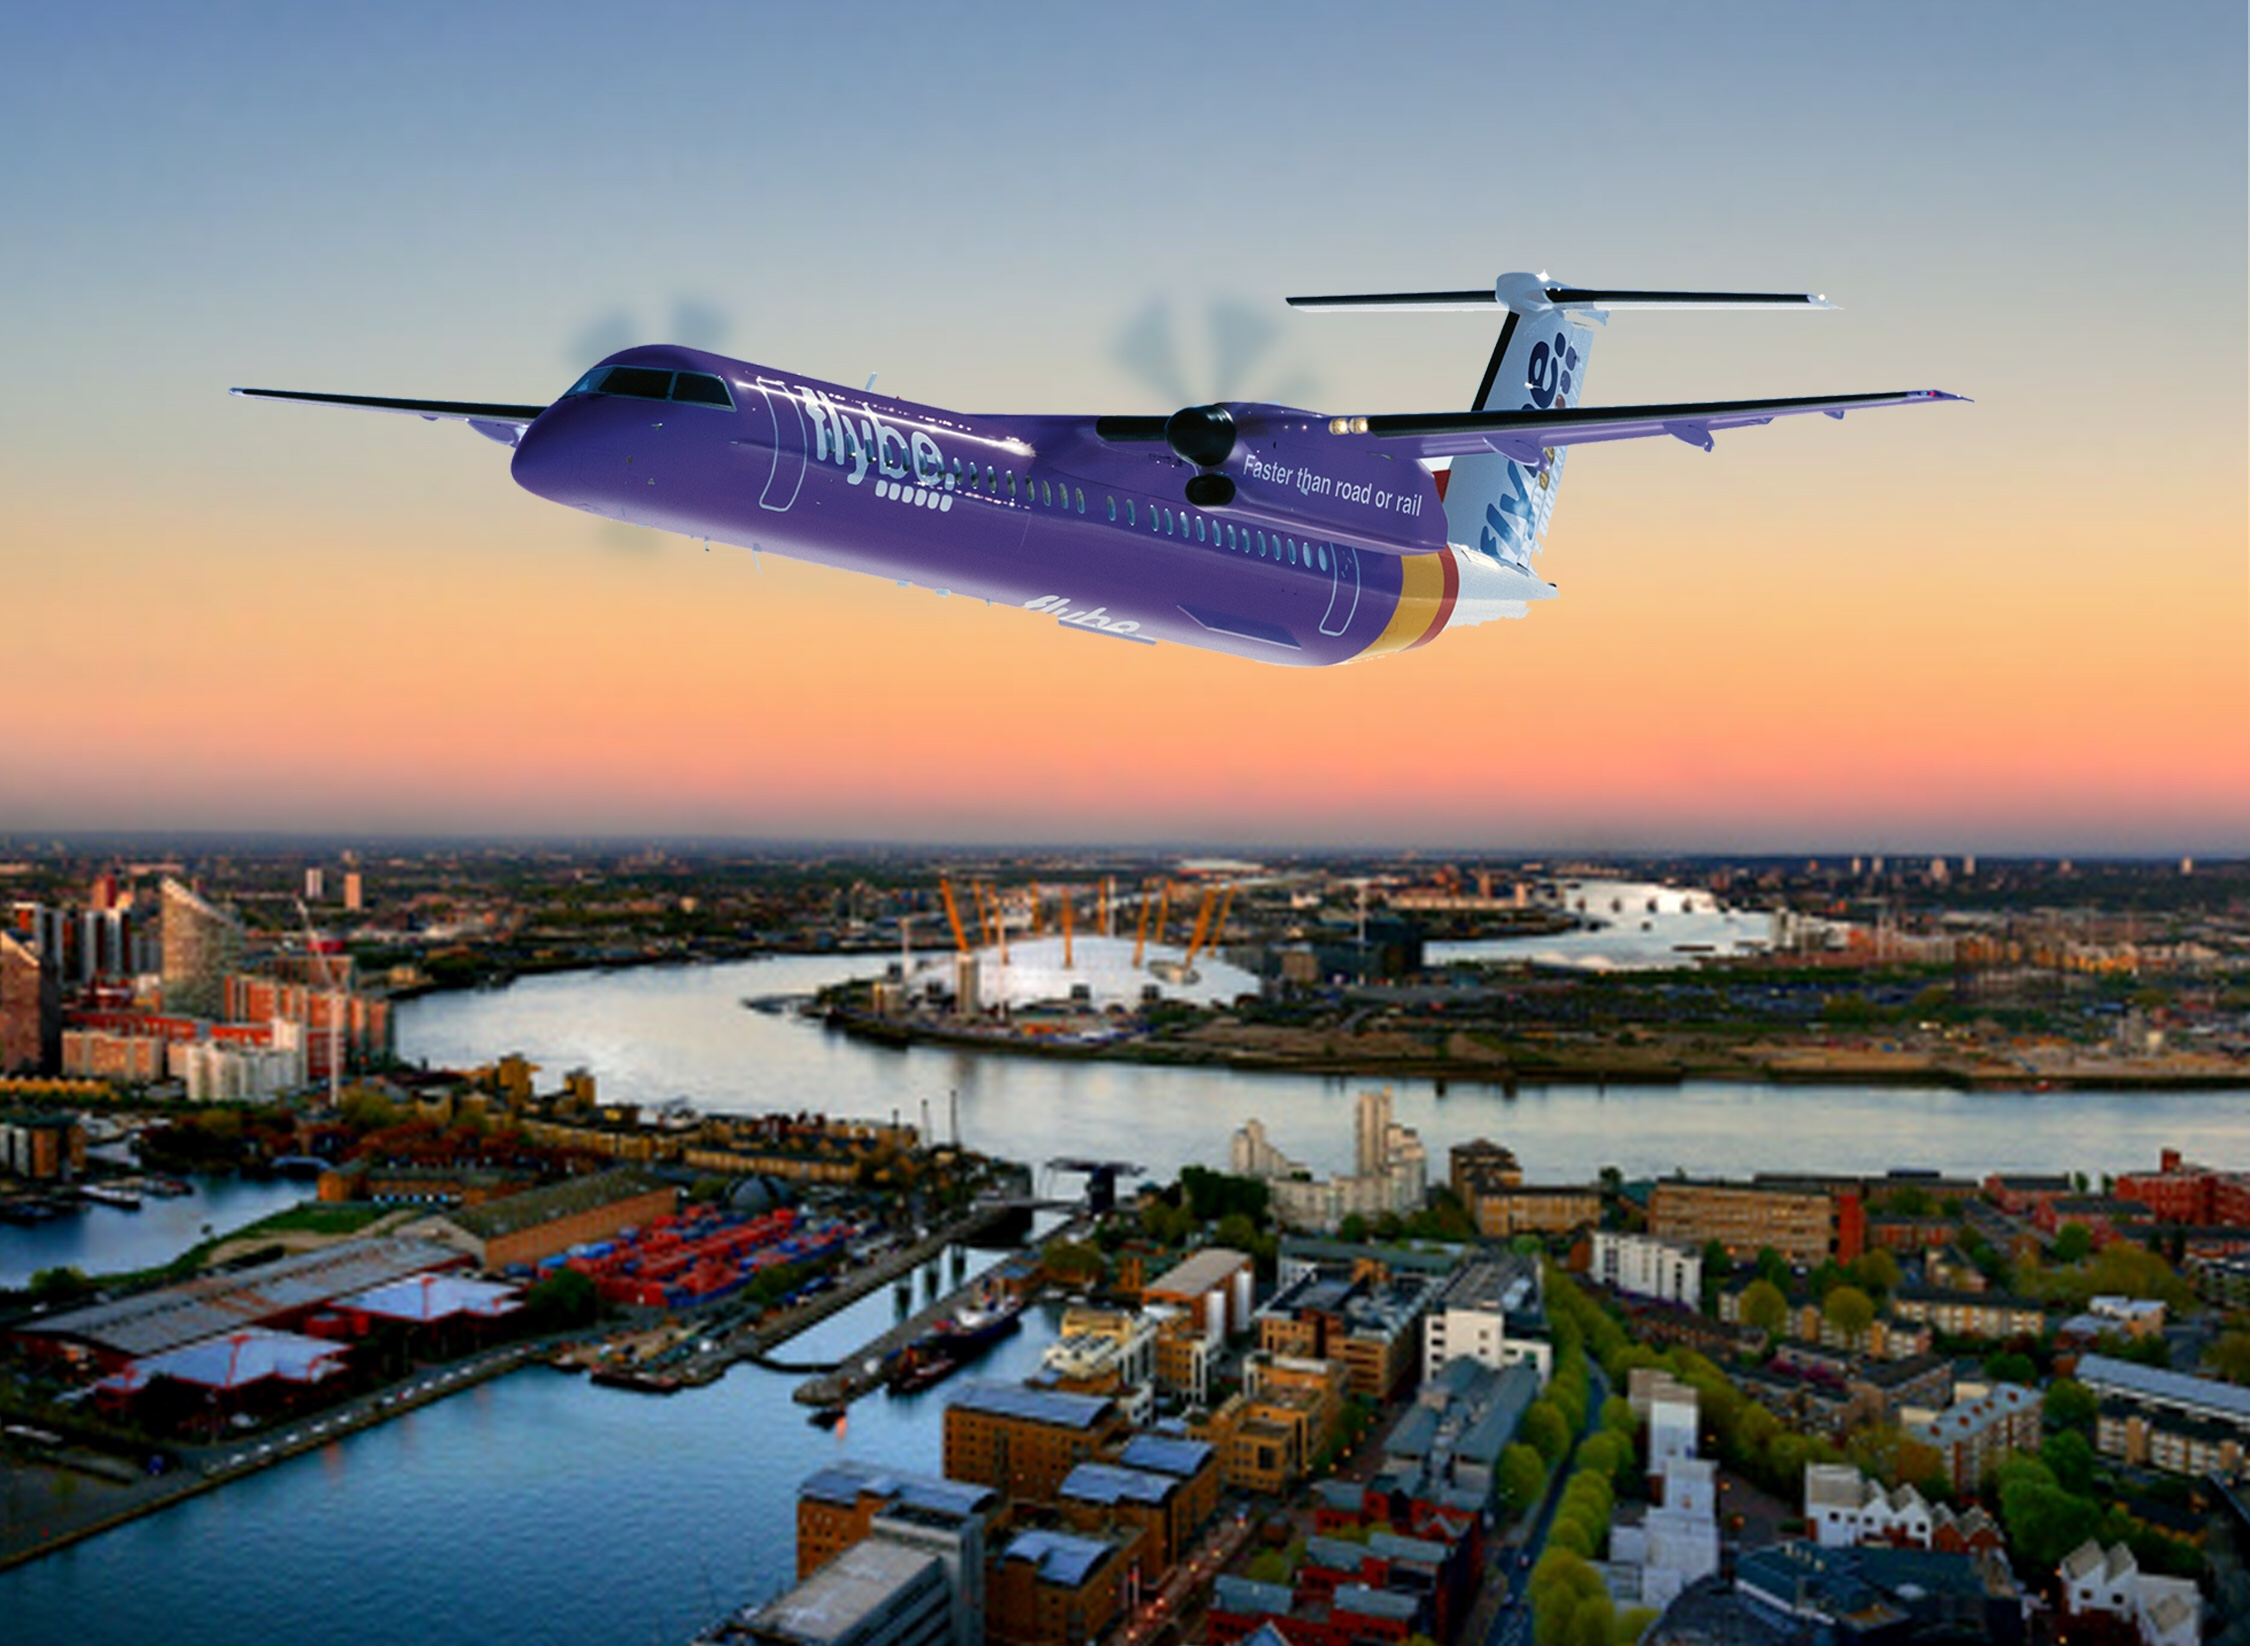 Virgin Atlantic, Stobart Group and Cyrus confirm offer for Flybe